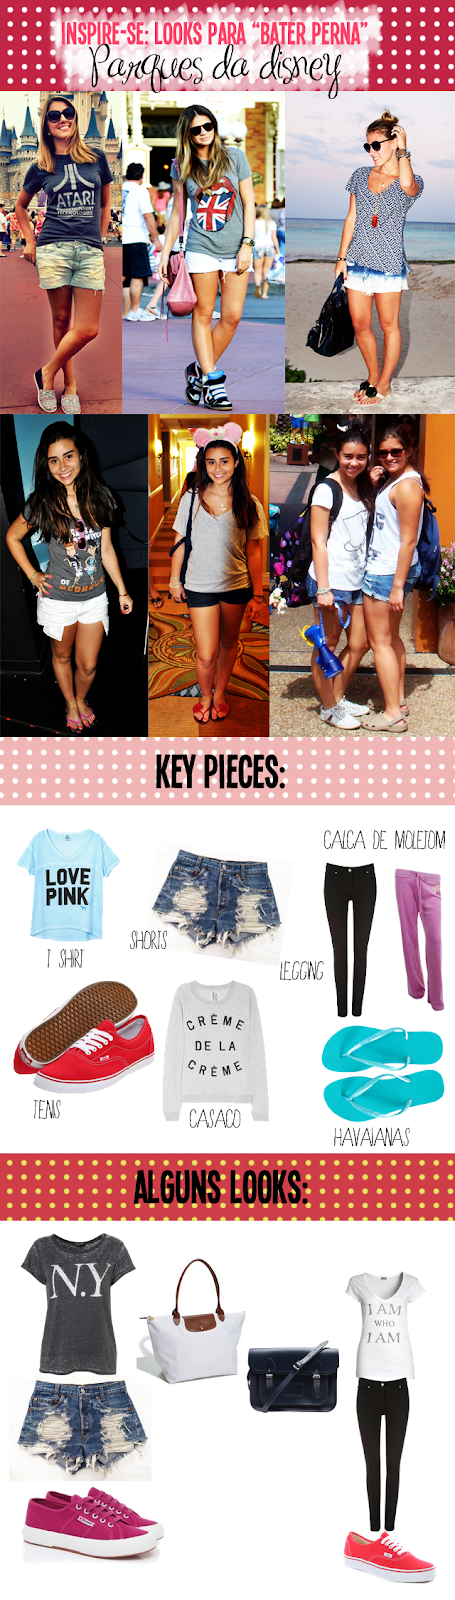 http://fashionsandwich.com/wp-content/uploads/2012/07/disneyyyyy.png